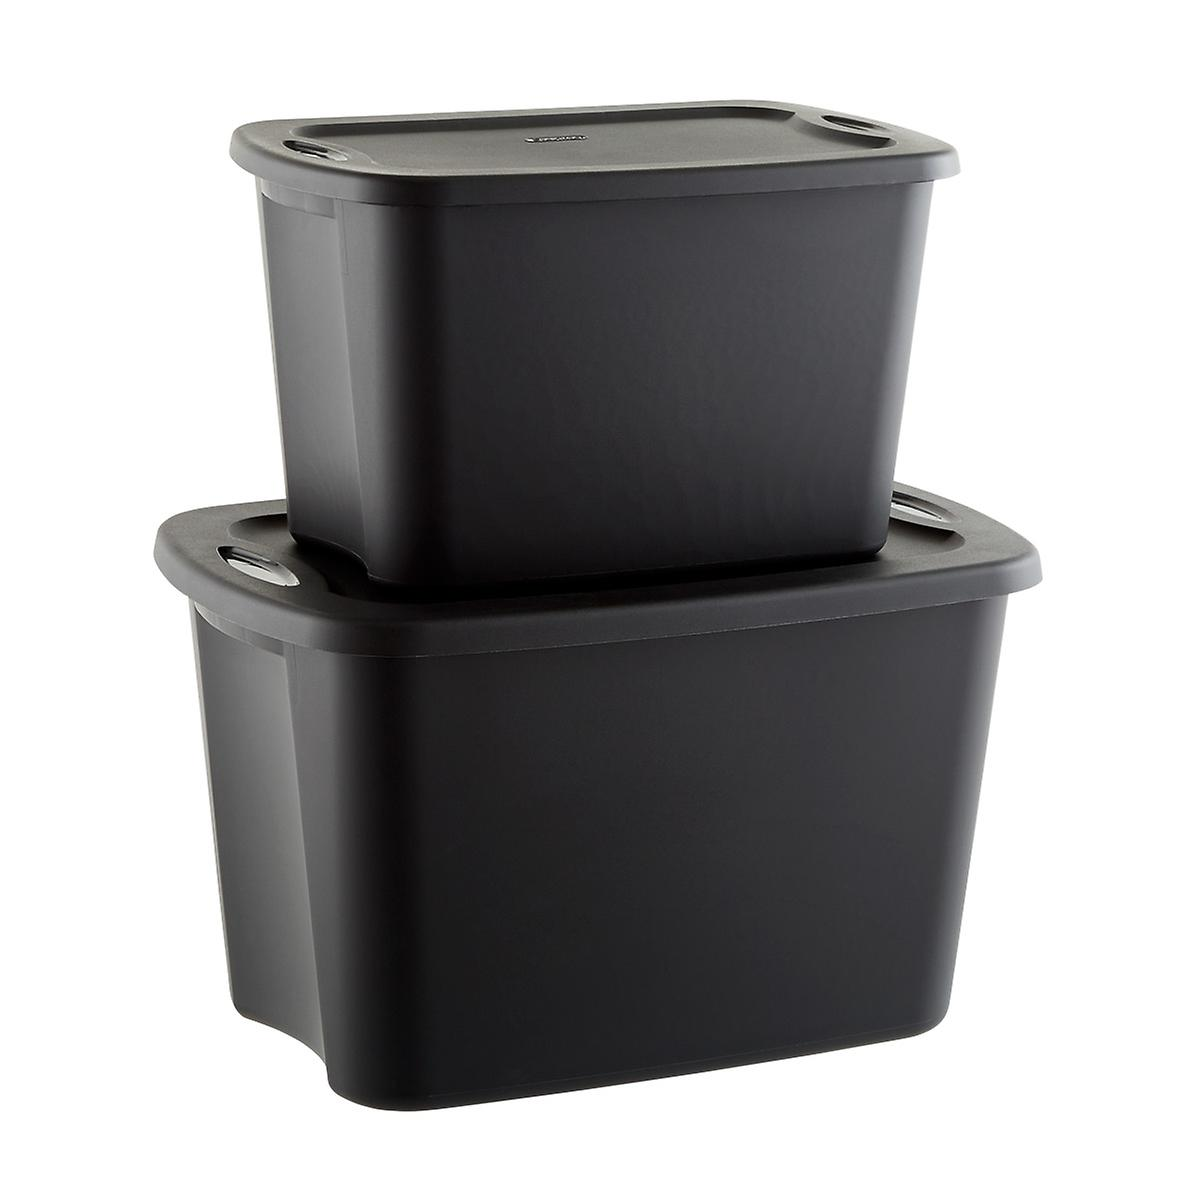 boxes tubs containers clear view lunch with l lids tub food plastic lock stacking w ebay storage nested n divider larger